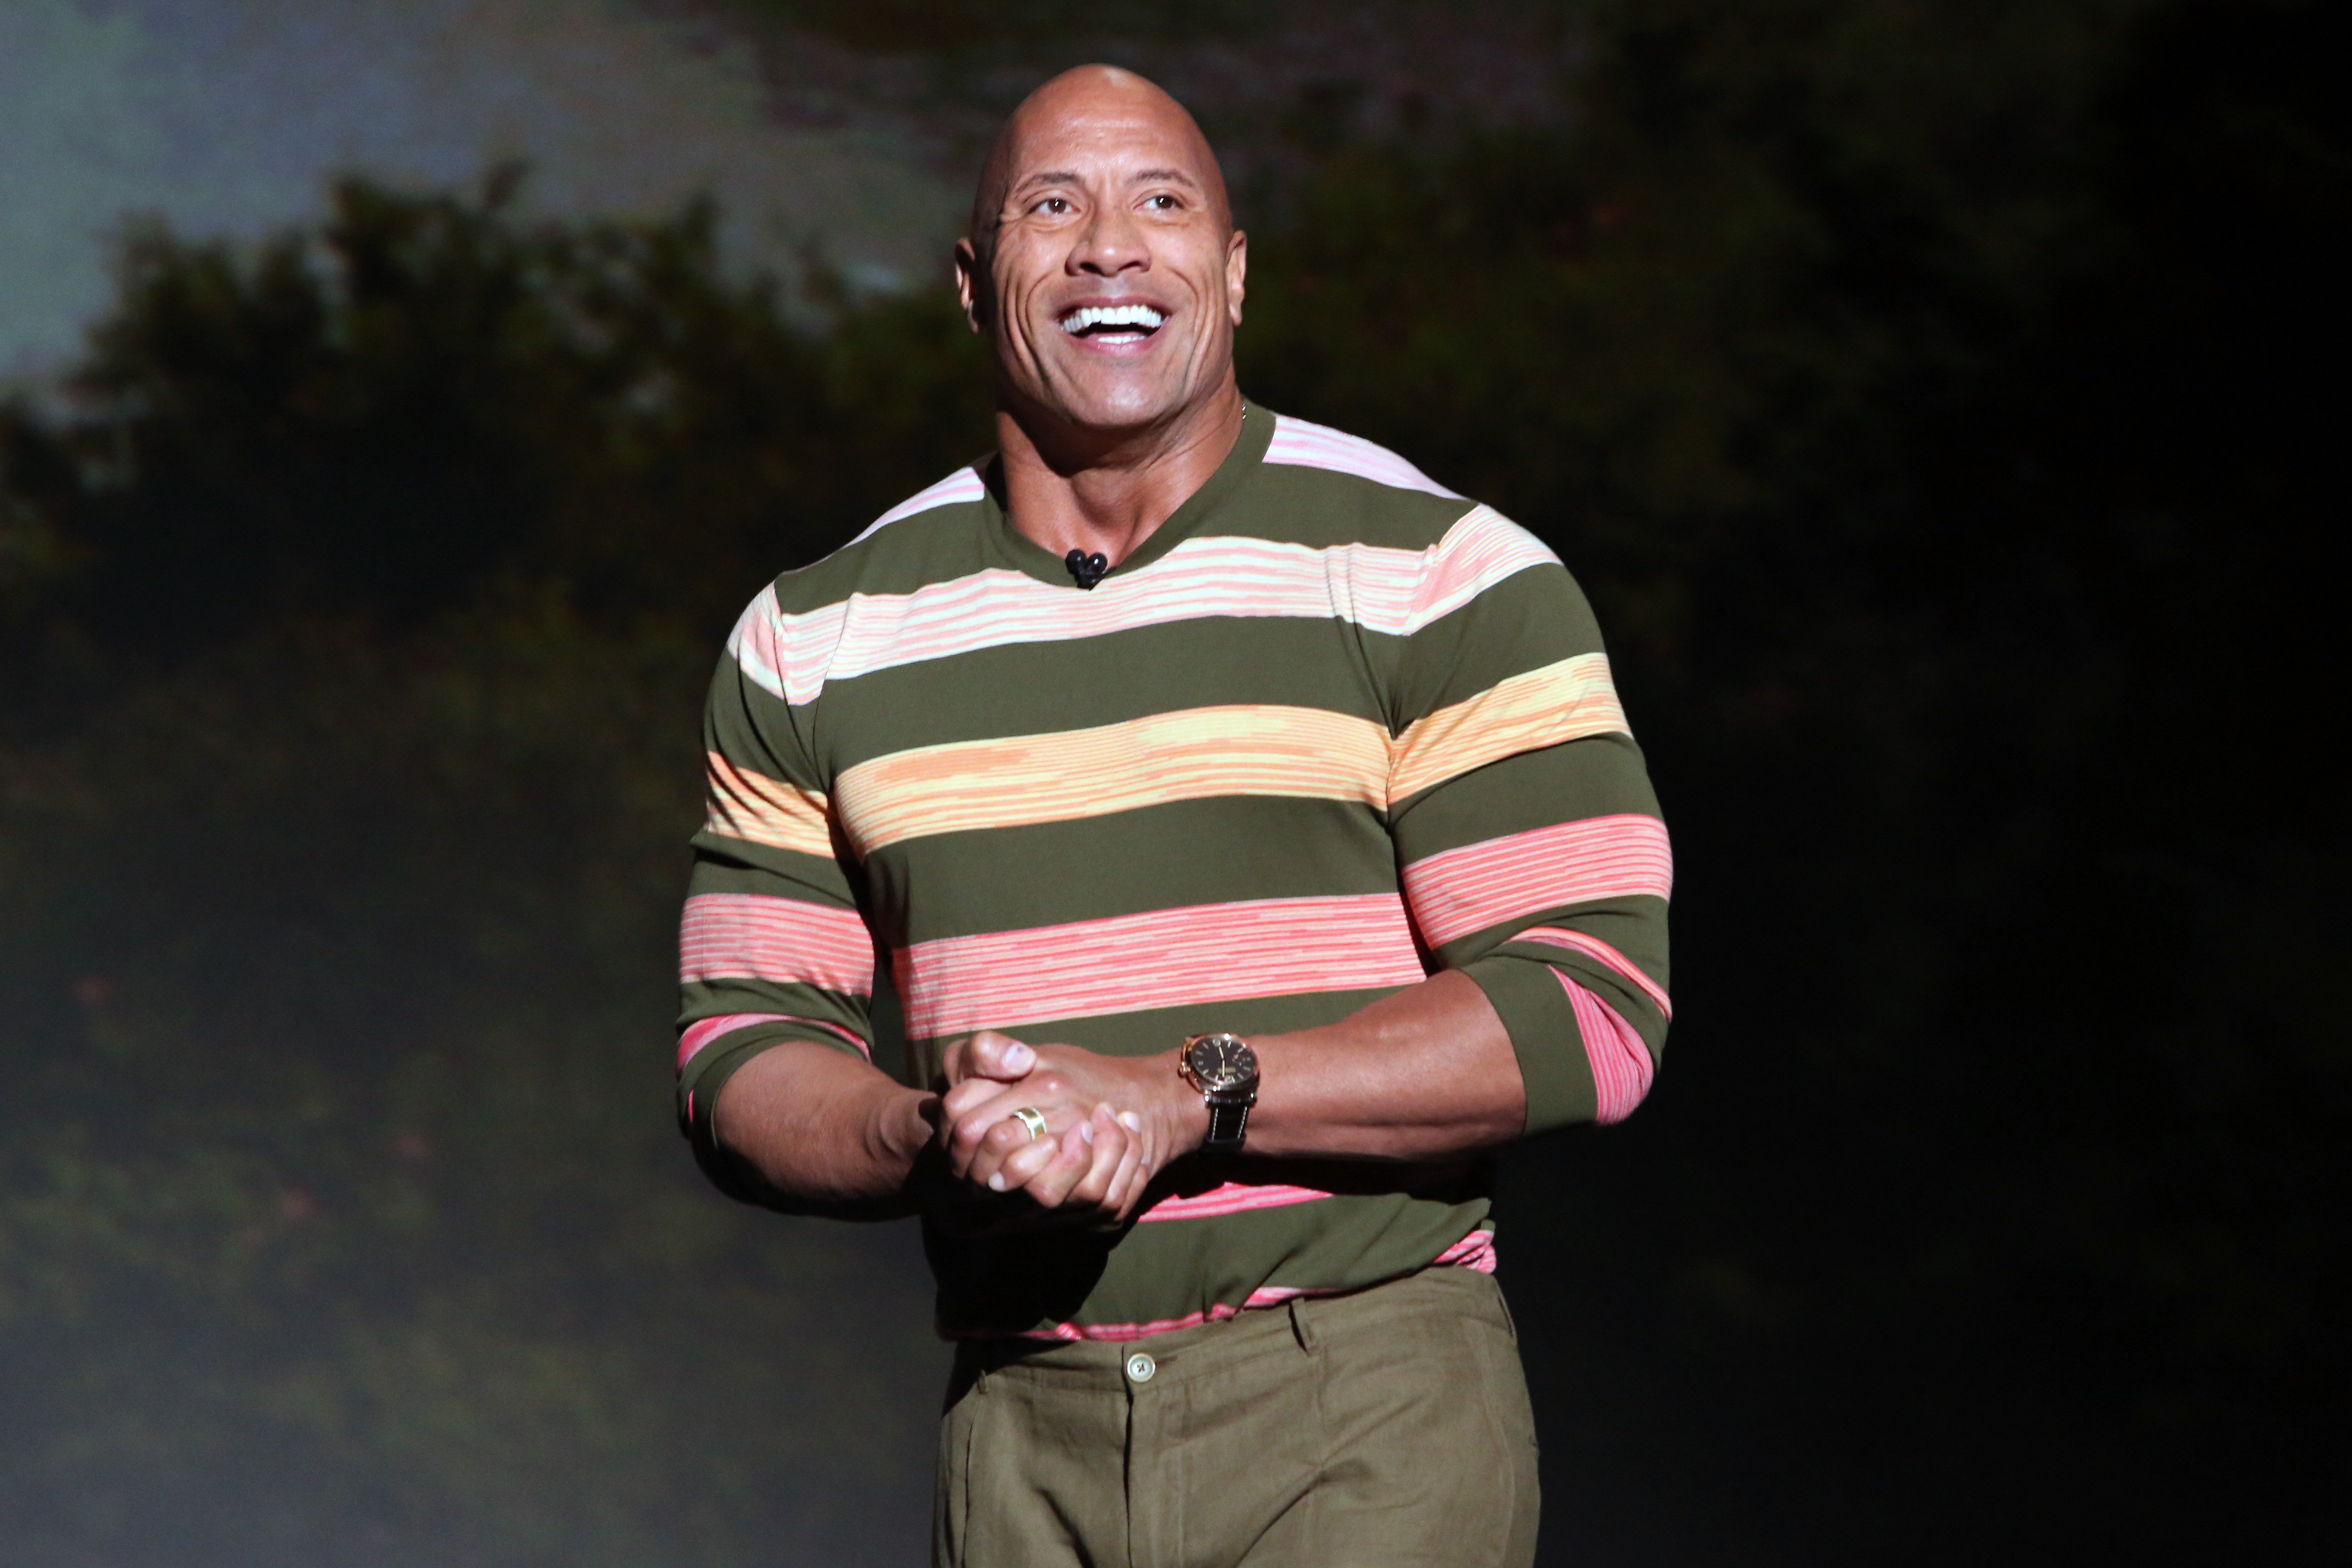 Dwayne Johnson at a Disney event in August 2019. | Photo: Getty Images